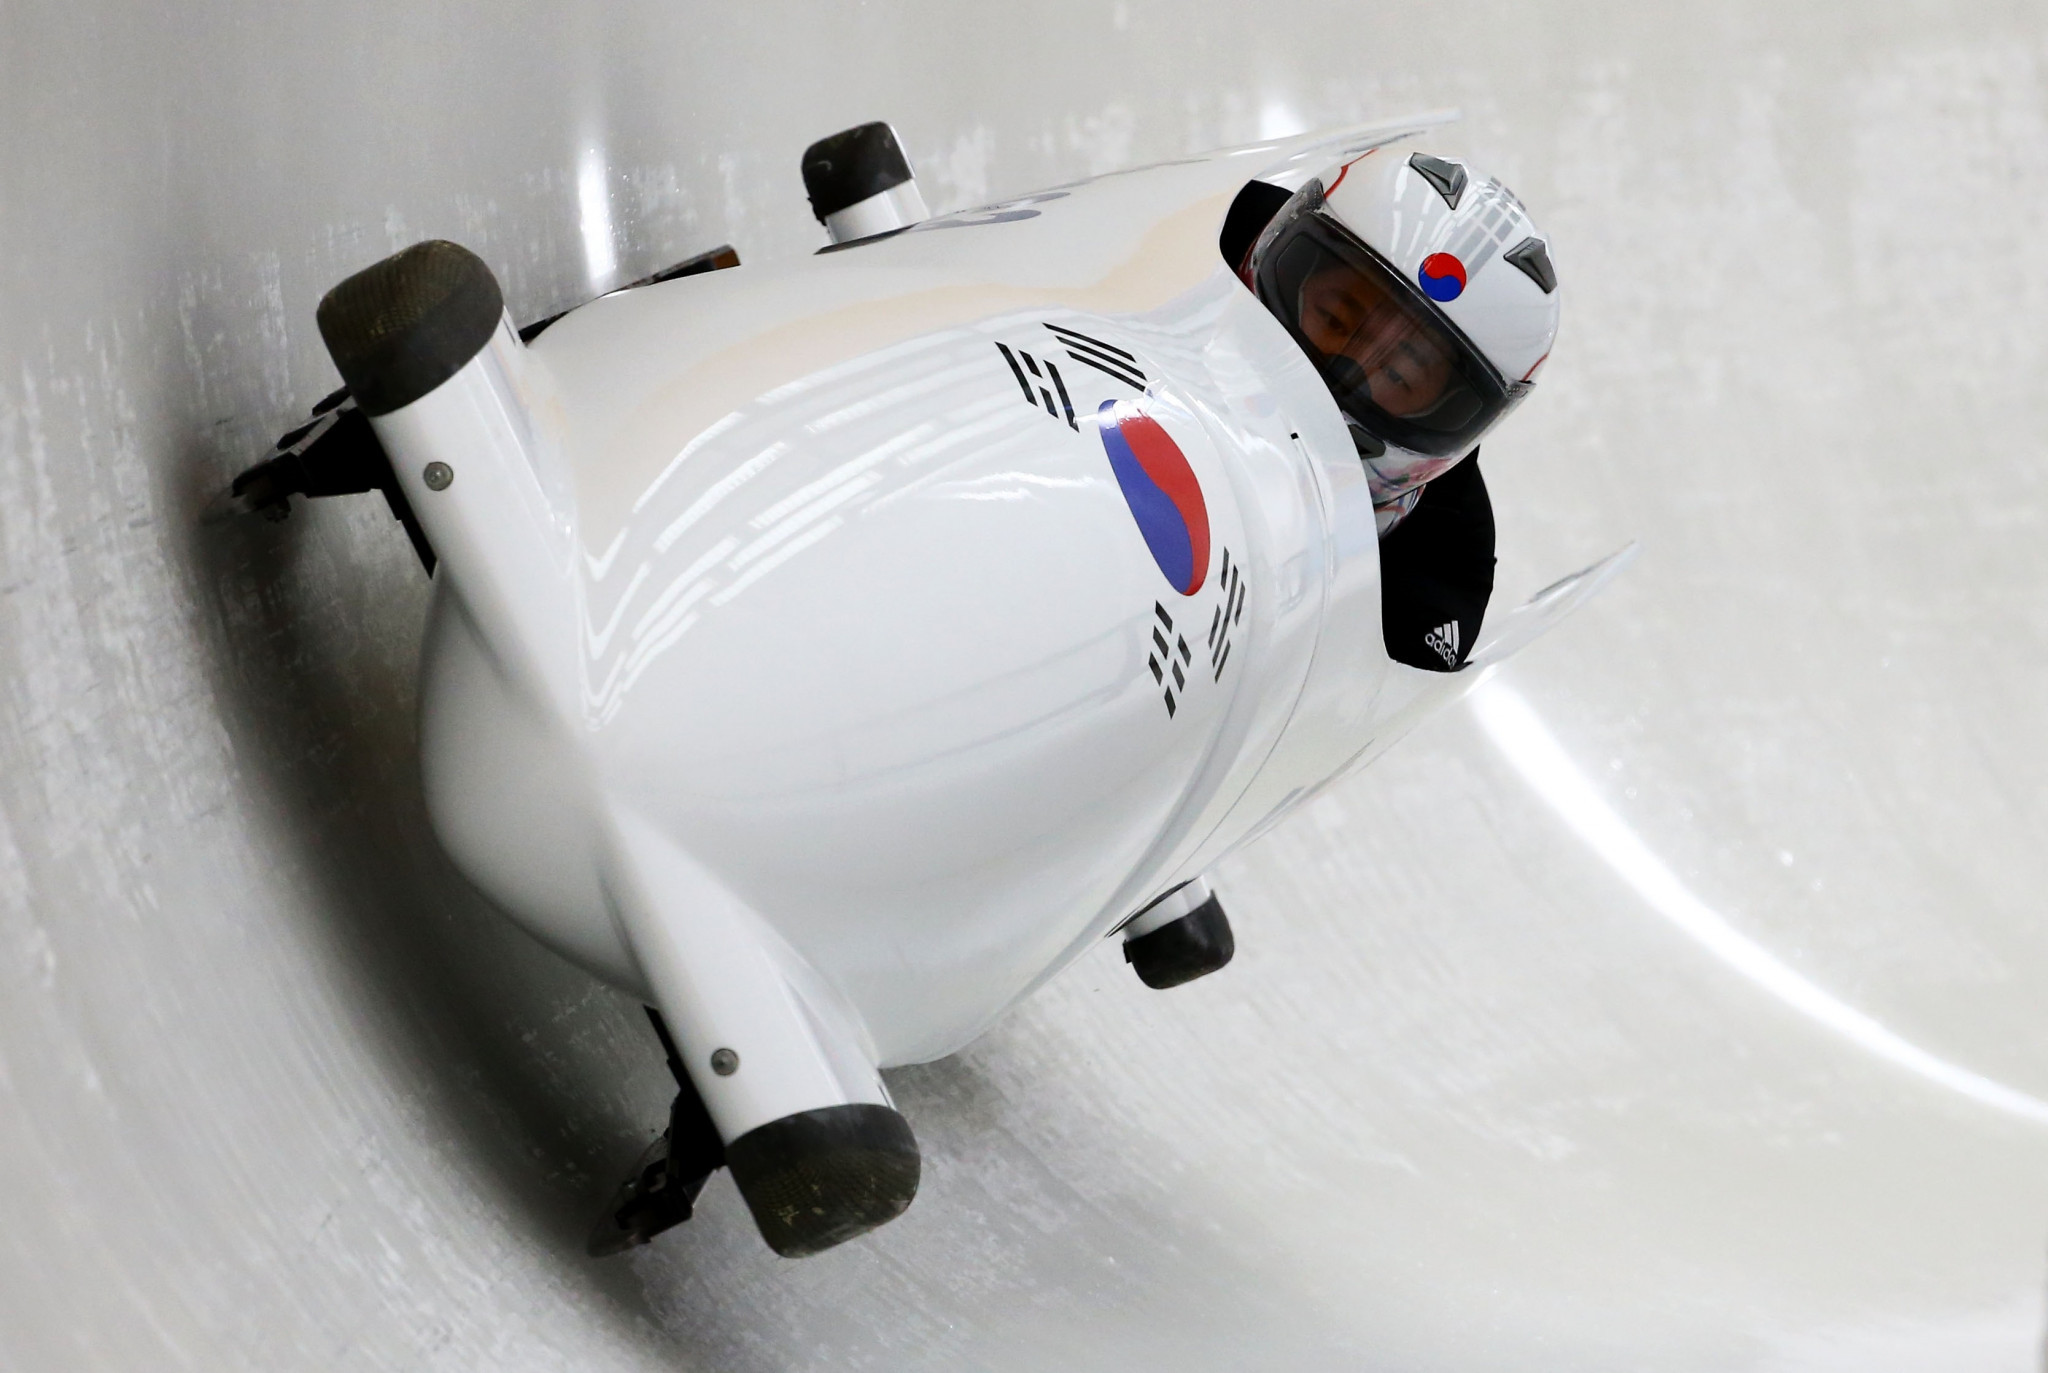 North Korea and South Korea could share a four-man sled to test conditions before bobsleigh competition starts at the Pyeongchang 2018 Winter Olympic Games